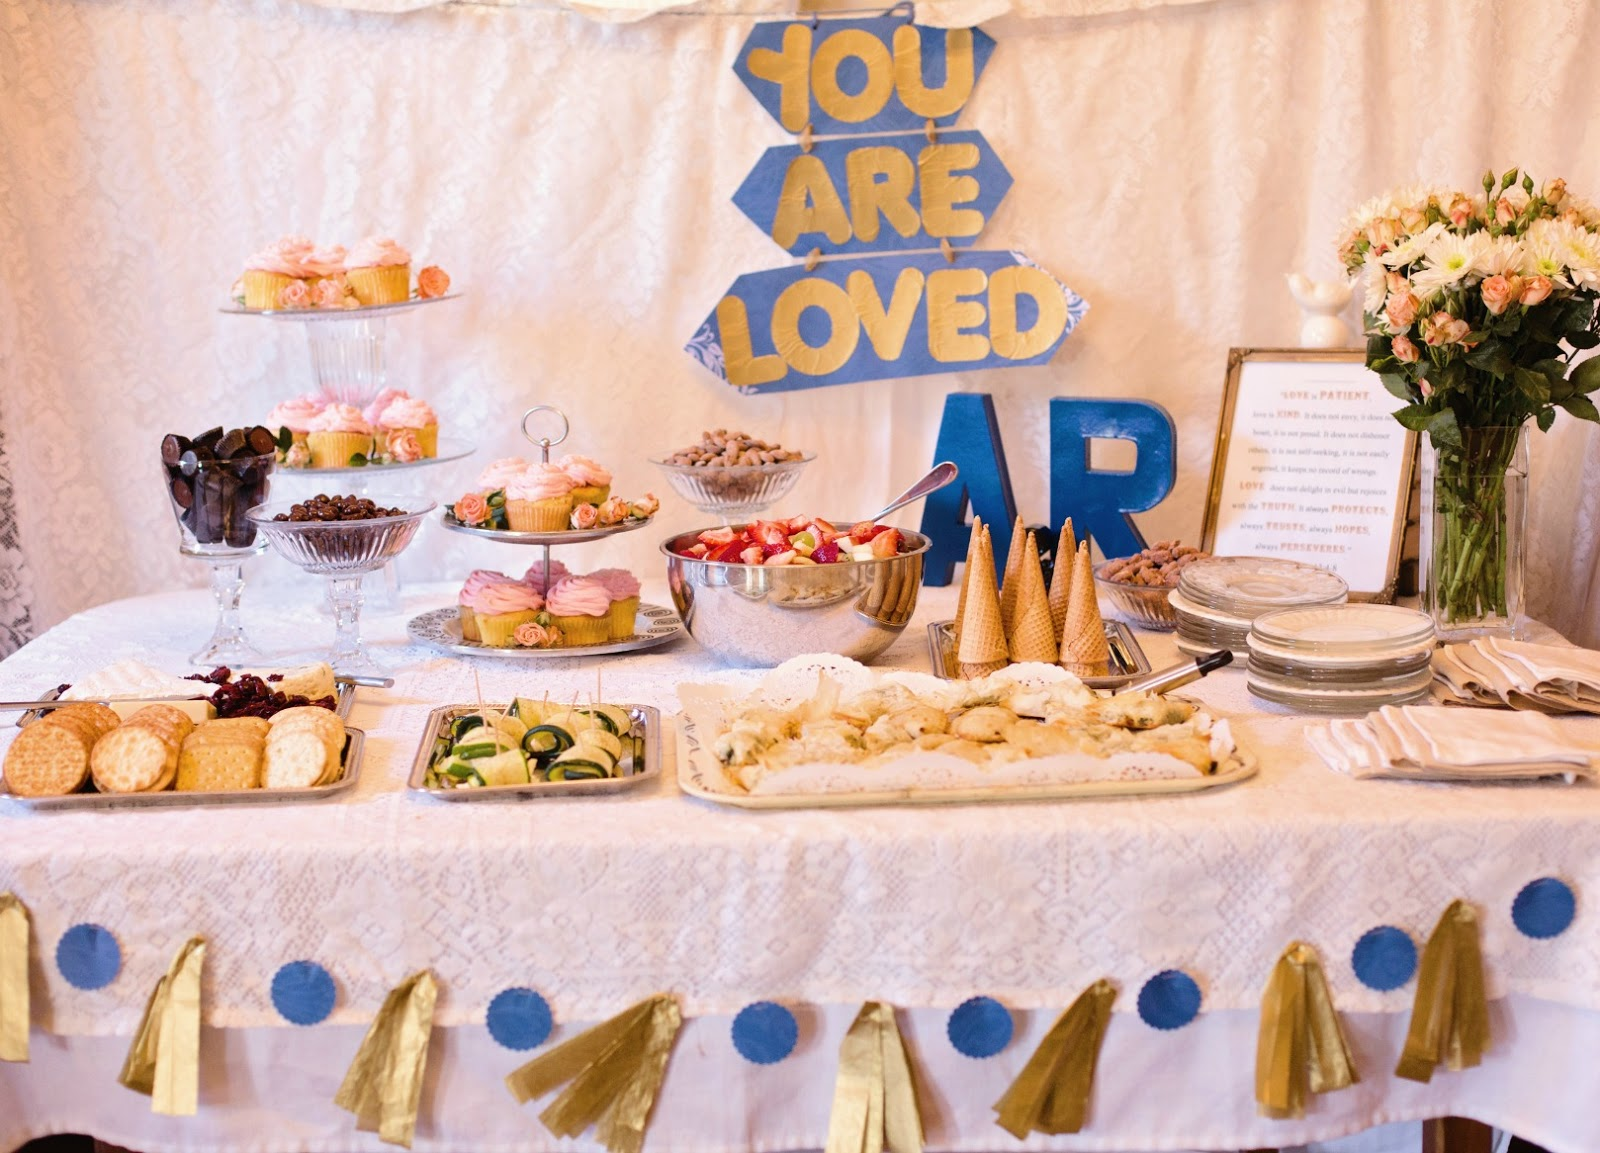 Wedding Gift Ideas For Someone Who Has Everything: Still In St. Louis: Bridal Shower On A Budget-DIY Cupcake